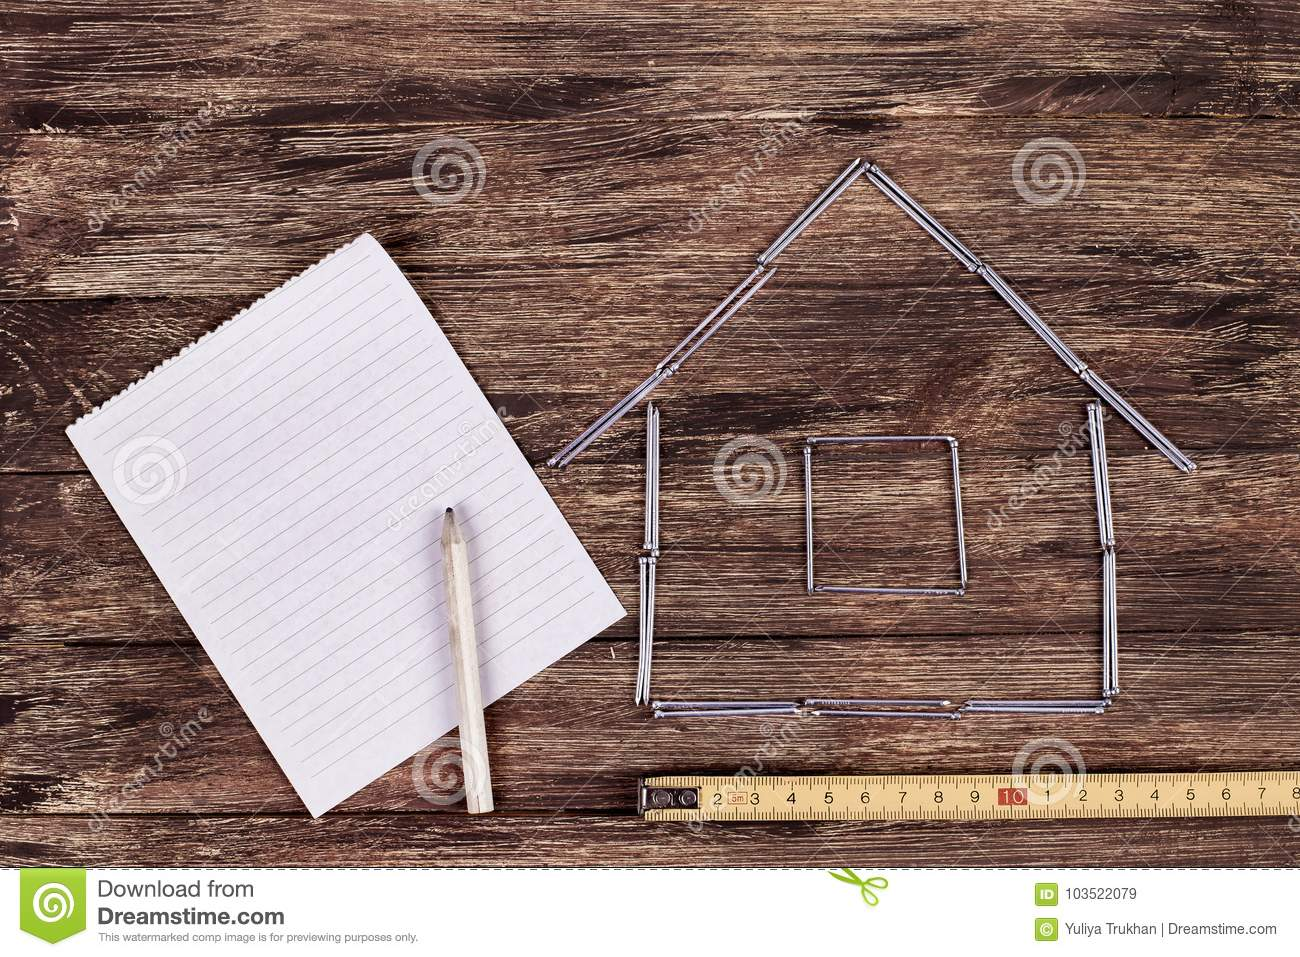 Home concept. Wooden model house on a work table with tools and empty spiral notebook